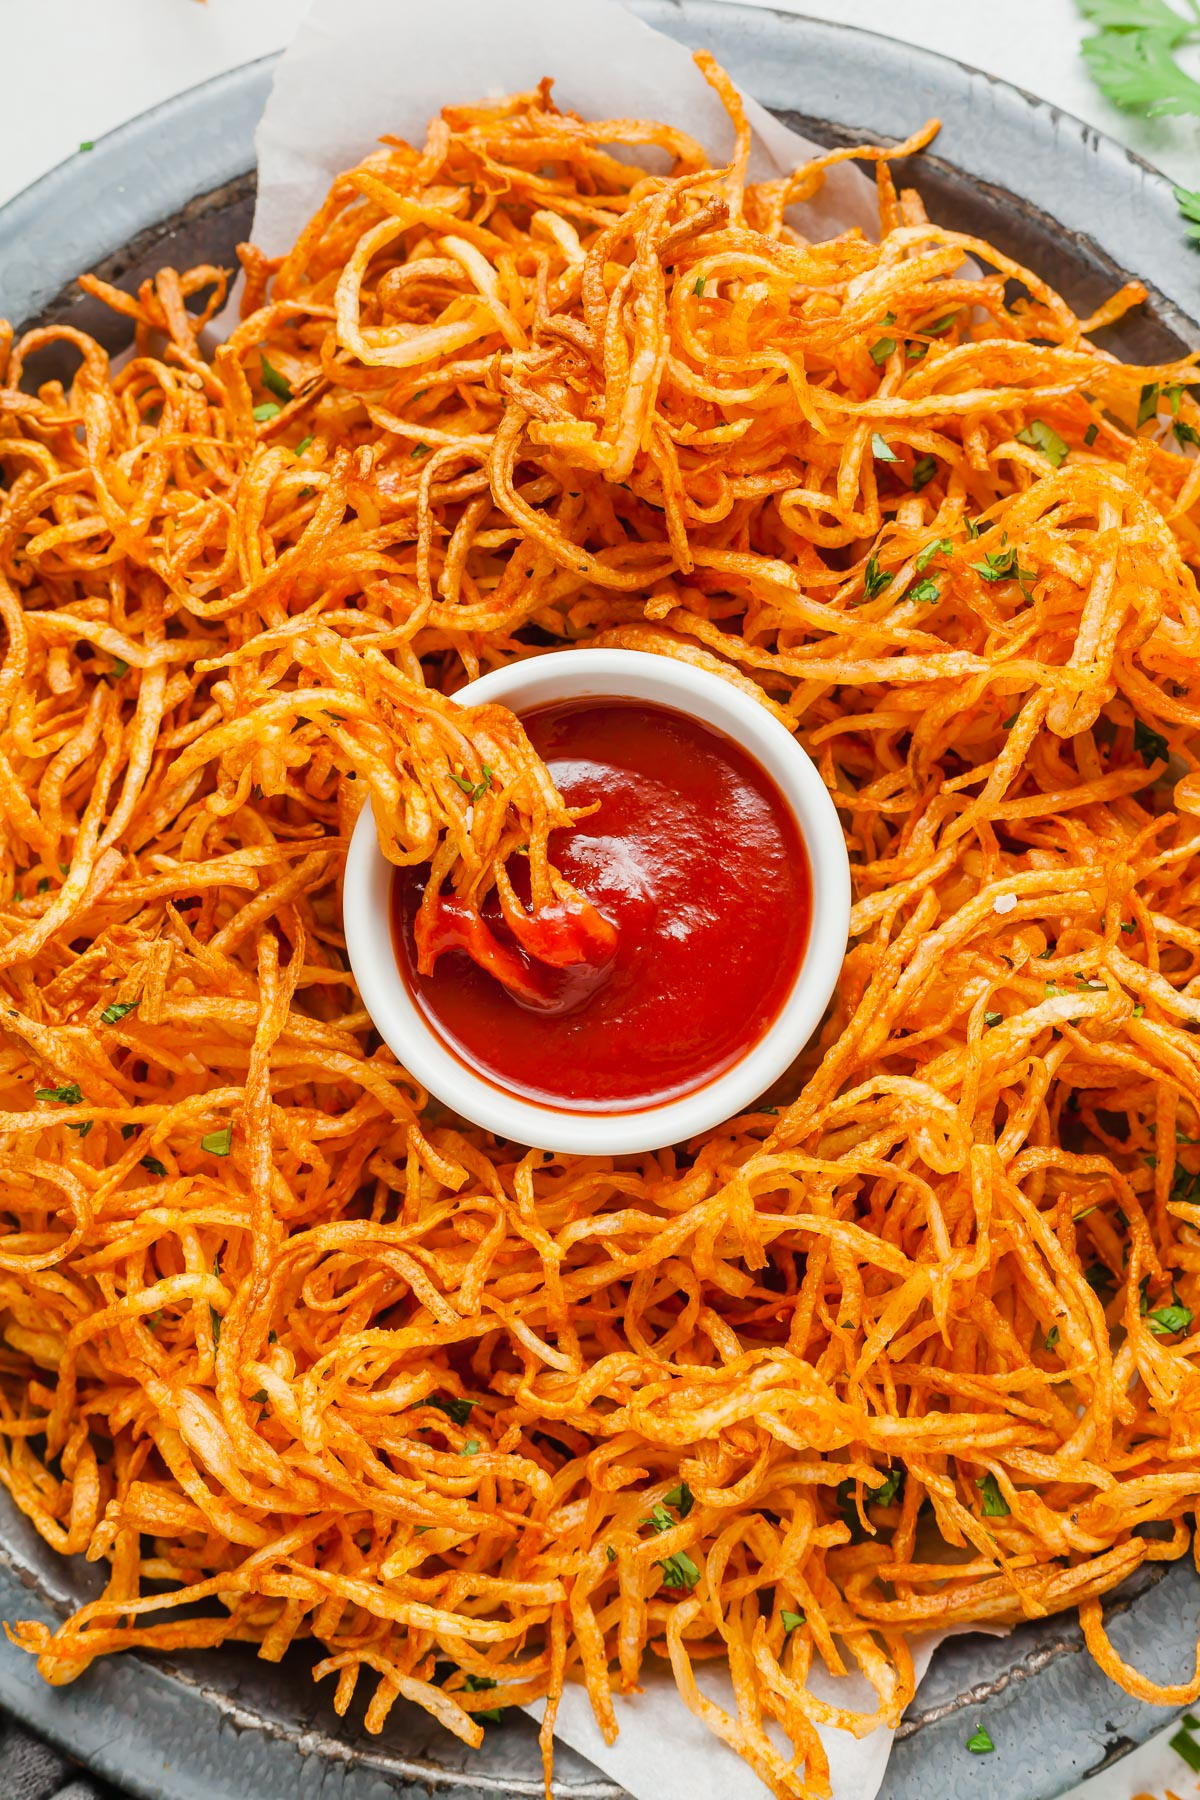 a plate of shoestring fries with a dish of ketchup in the middle